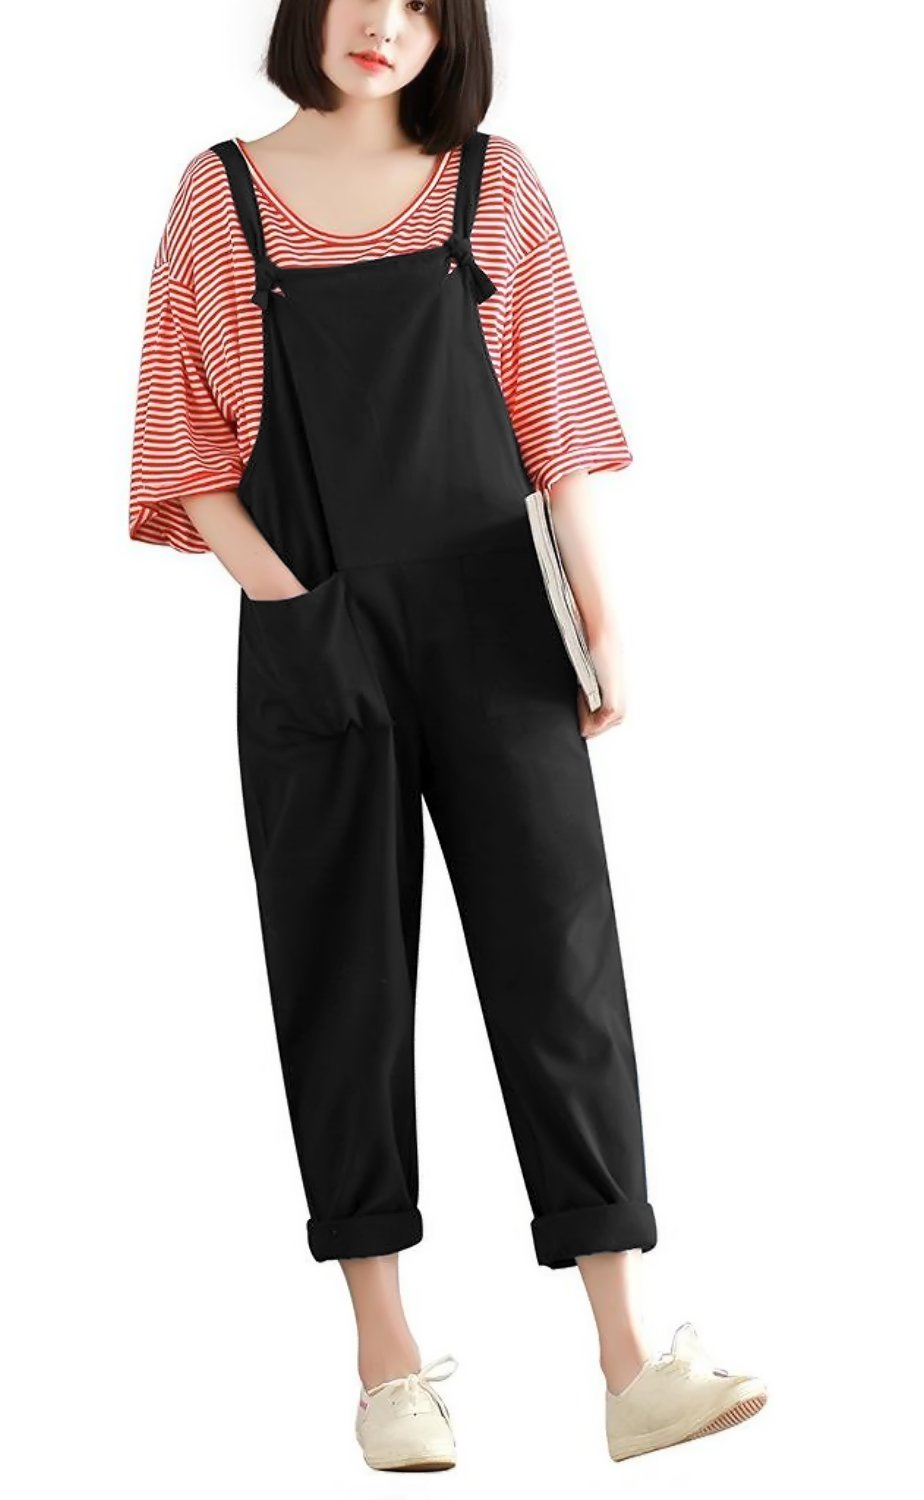 Hulaha Womens Cotton Plus Size Overalls Baggy Bibs Jumpsuits ,Black,US Small/Tag M